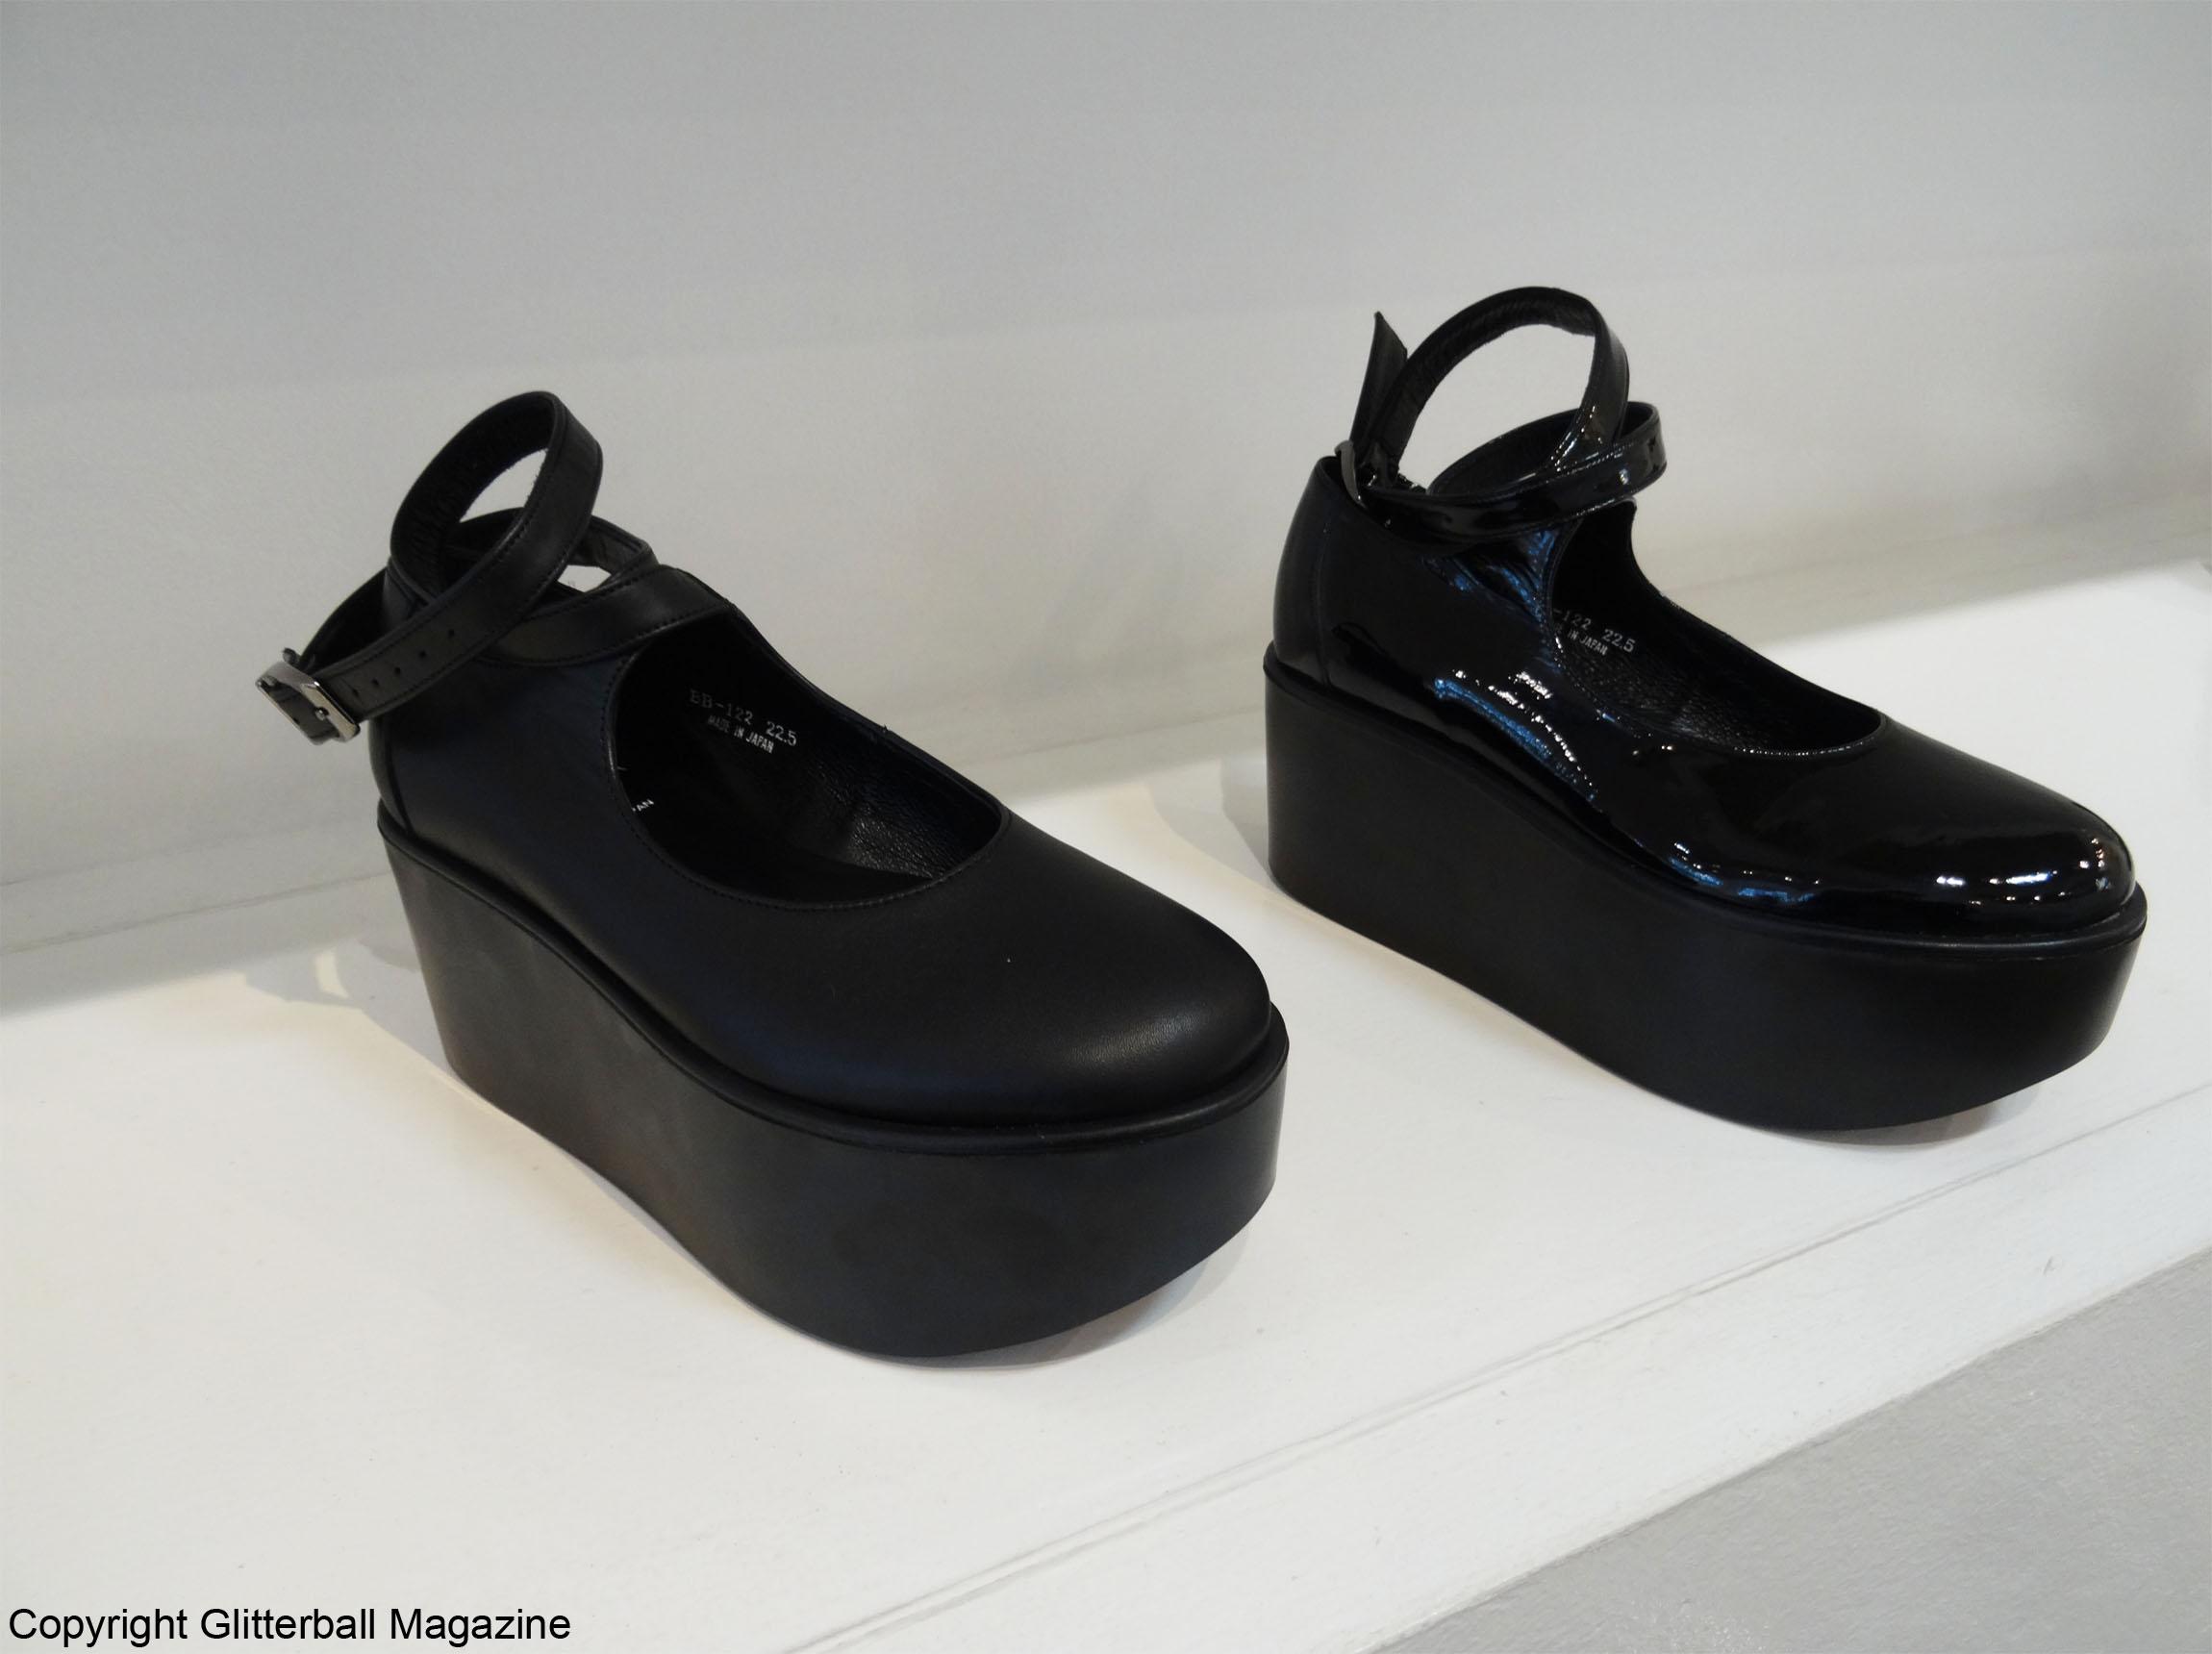 e0d97cfaca93 UNIQUE JAPANESE PLATFORM SHOES FROM TOKYO BOPPER